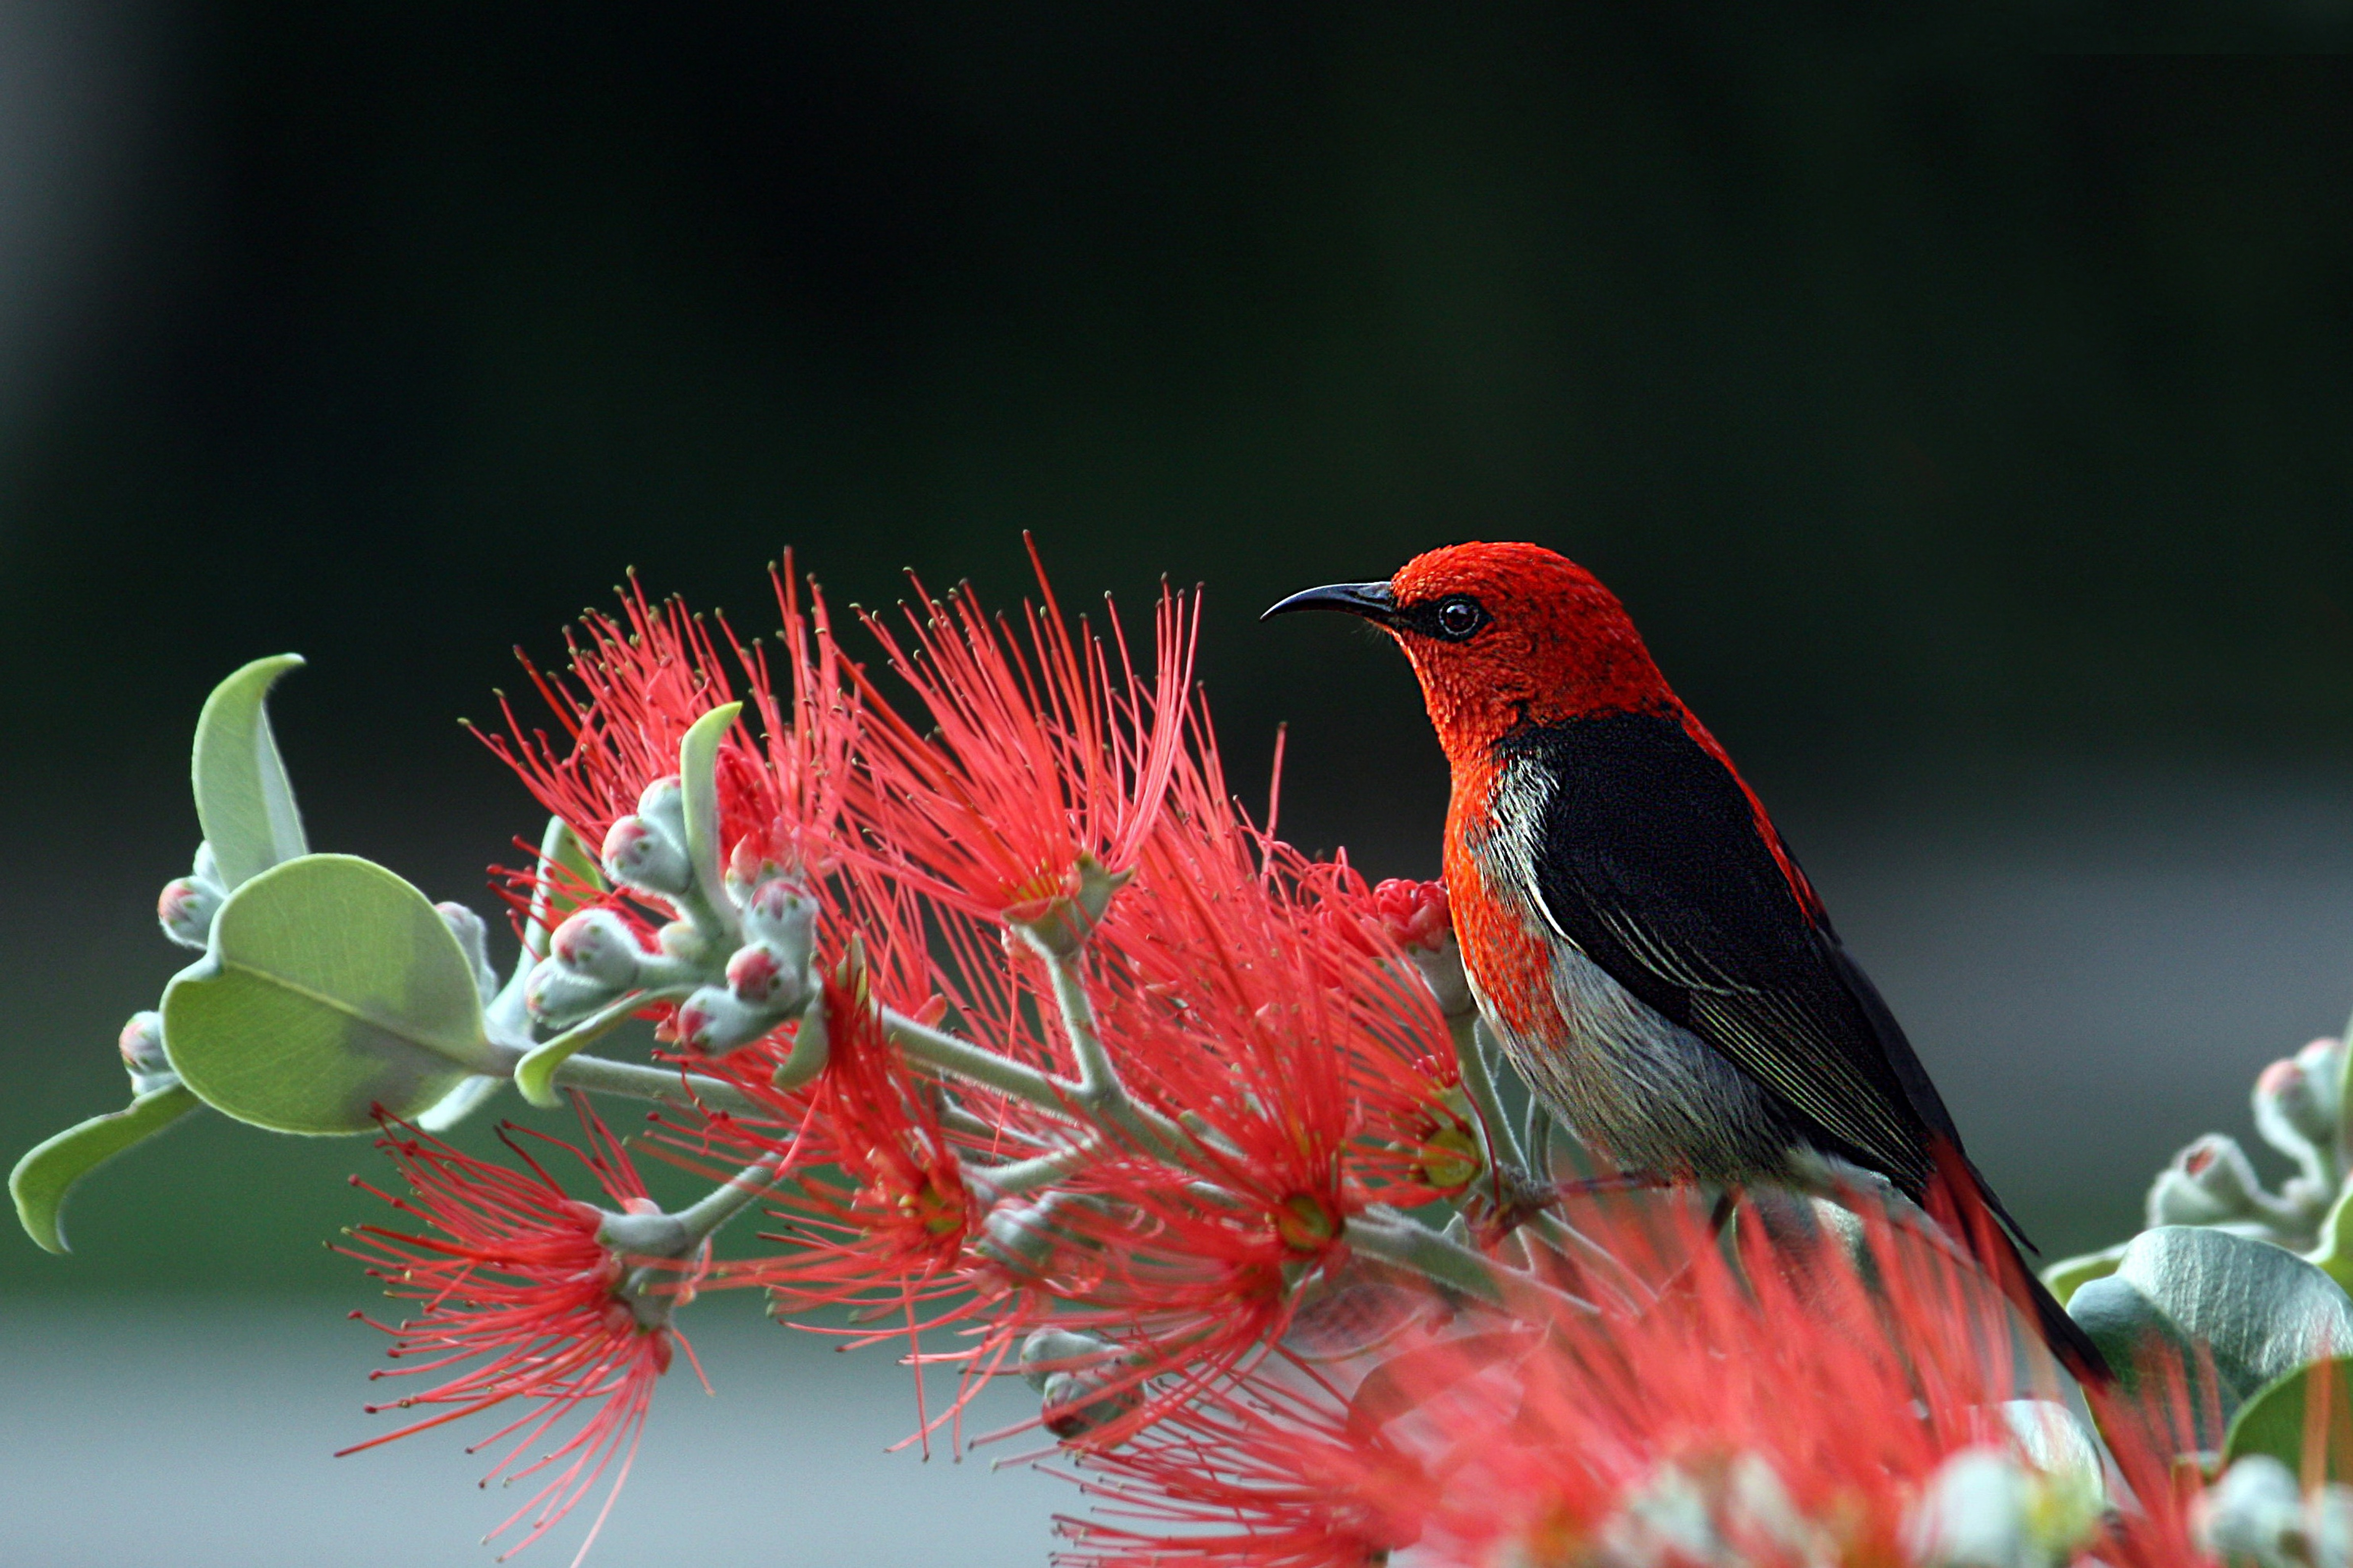 Red and Black Bird on Red Flowers by Pixabay